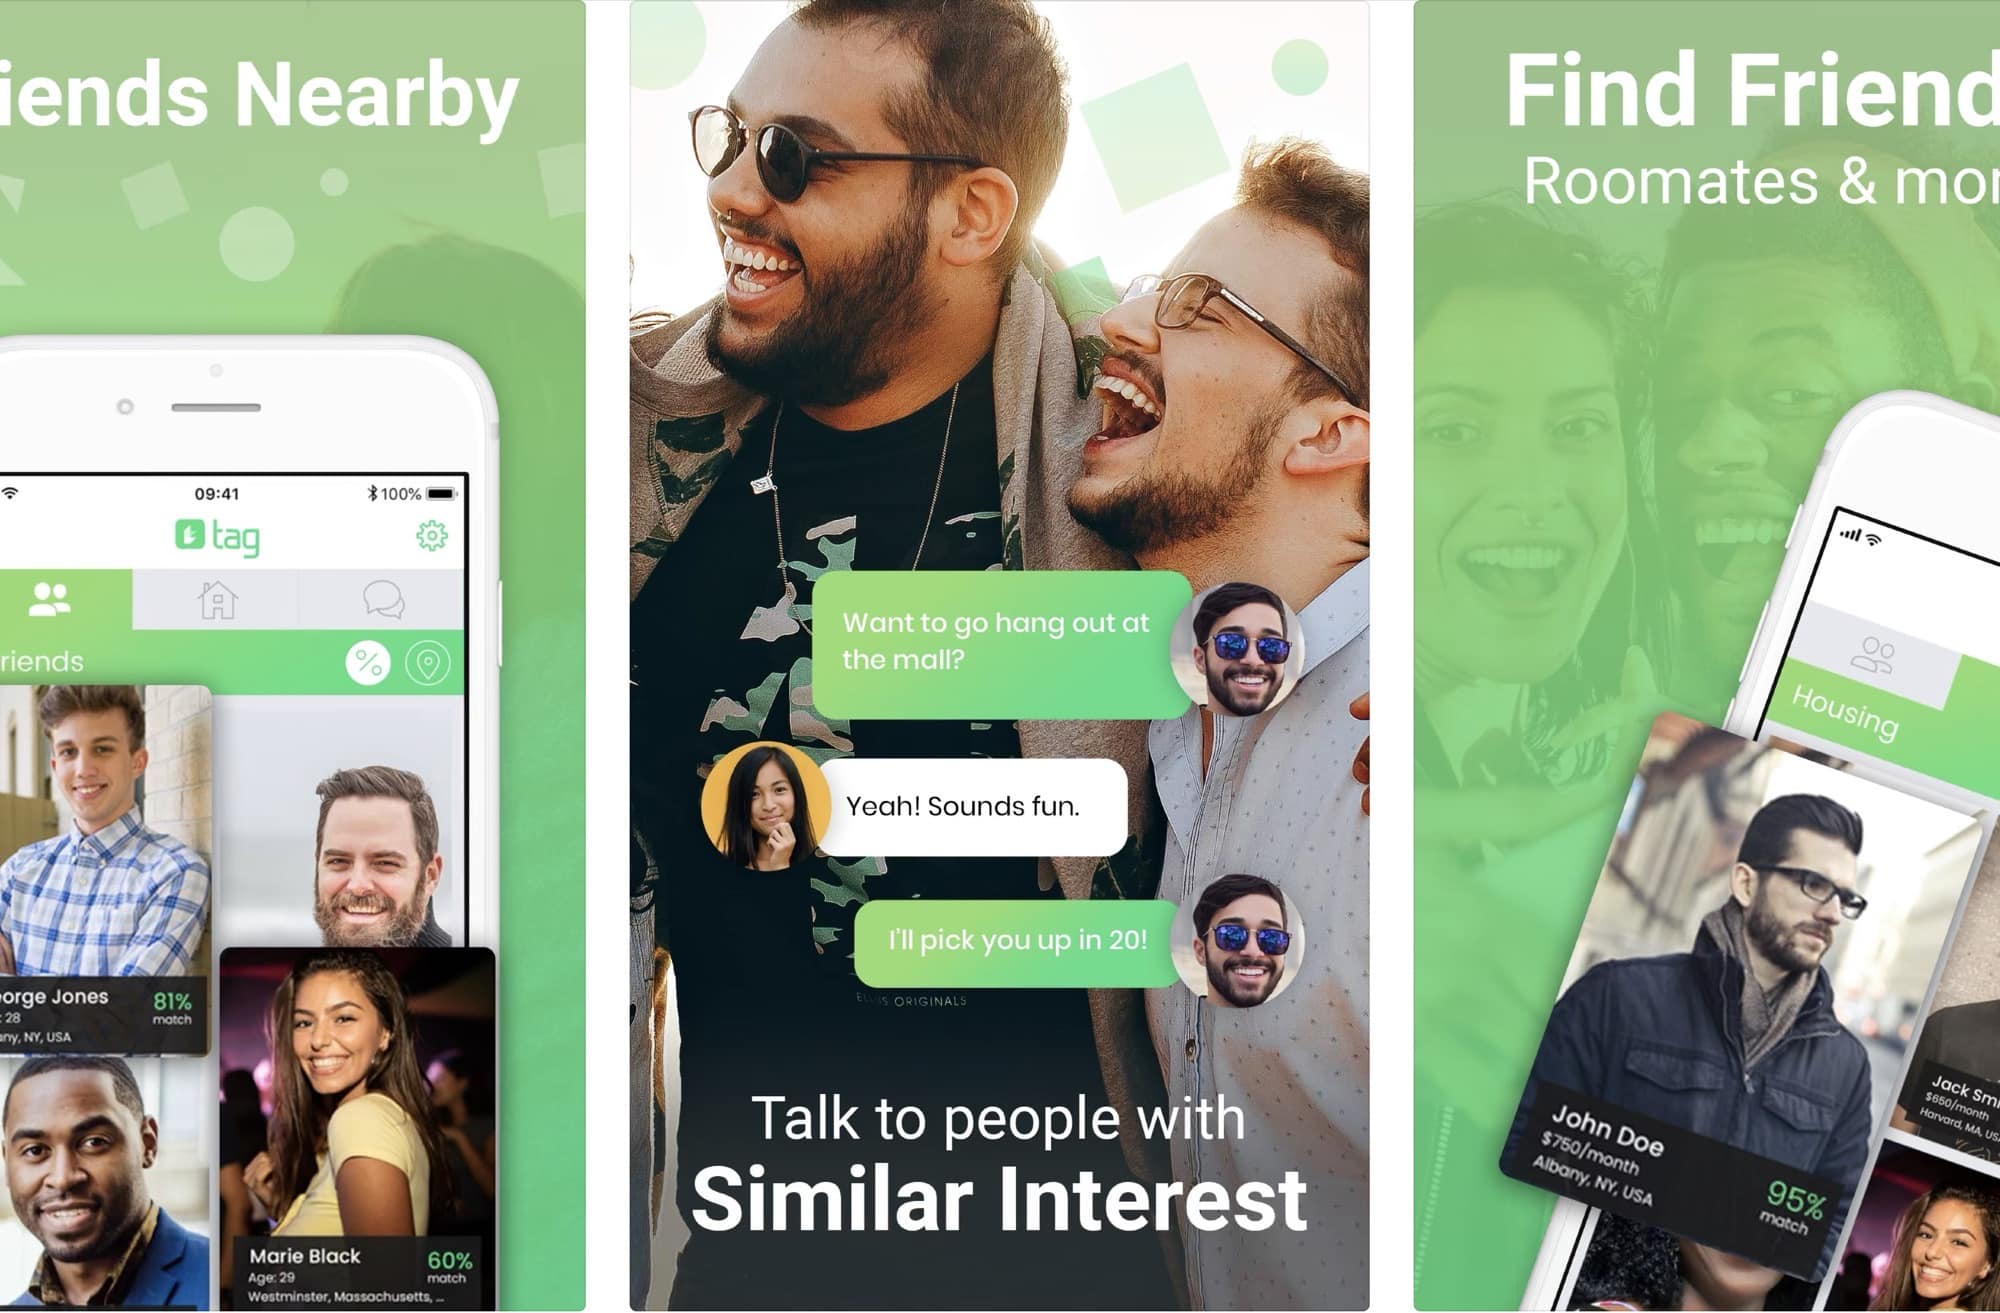 Tag app lets you hook up with locals and make new friends.